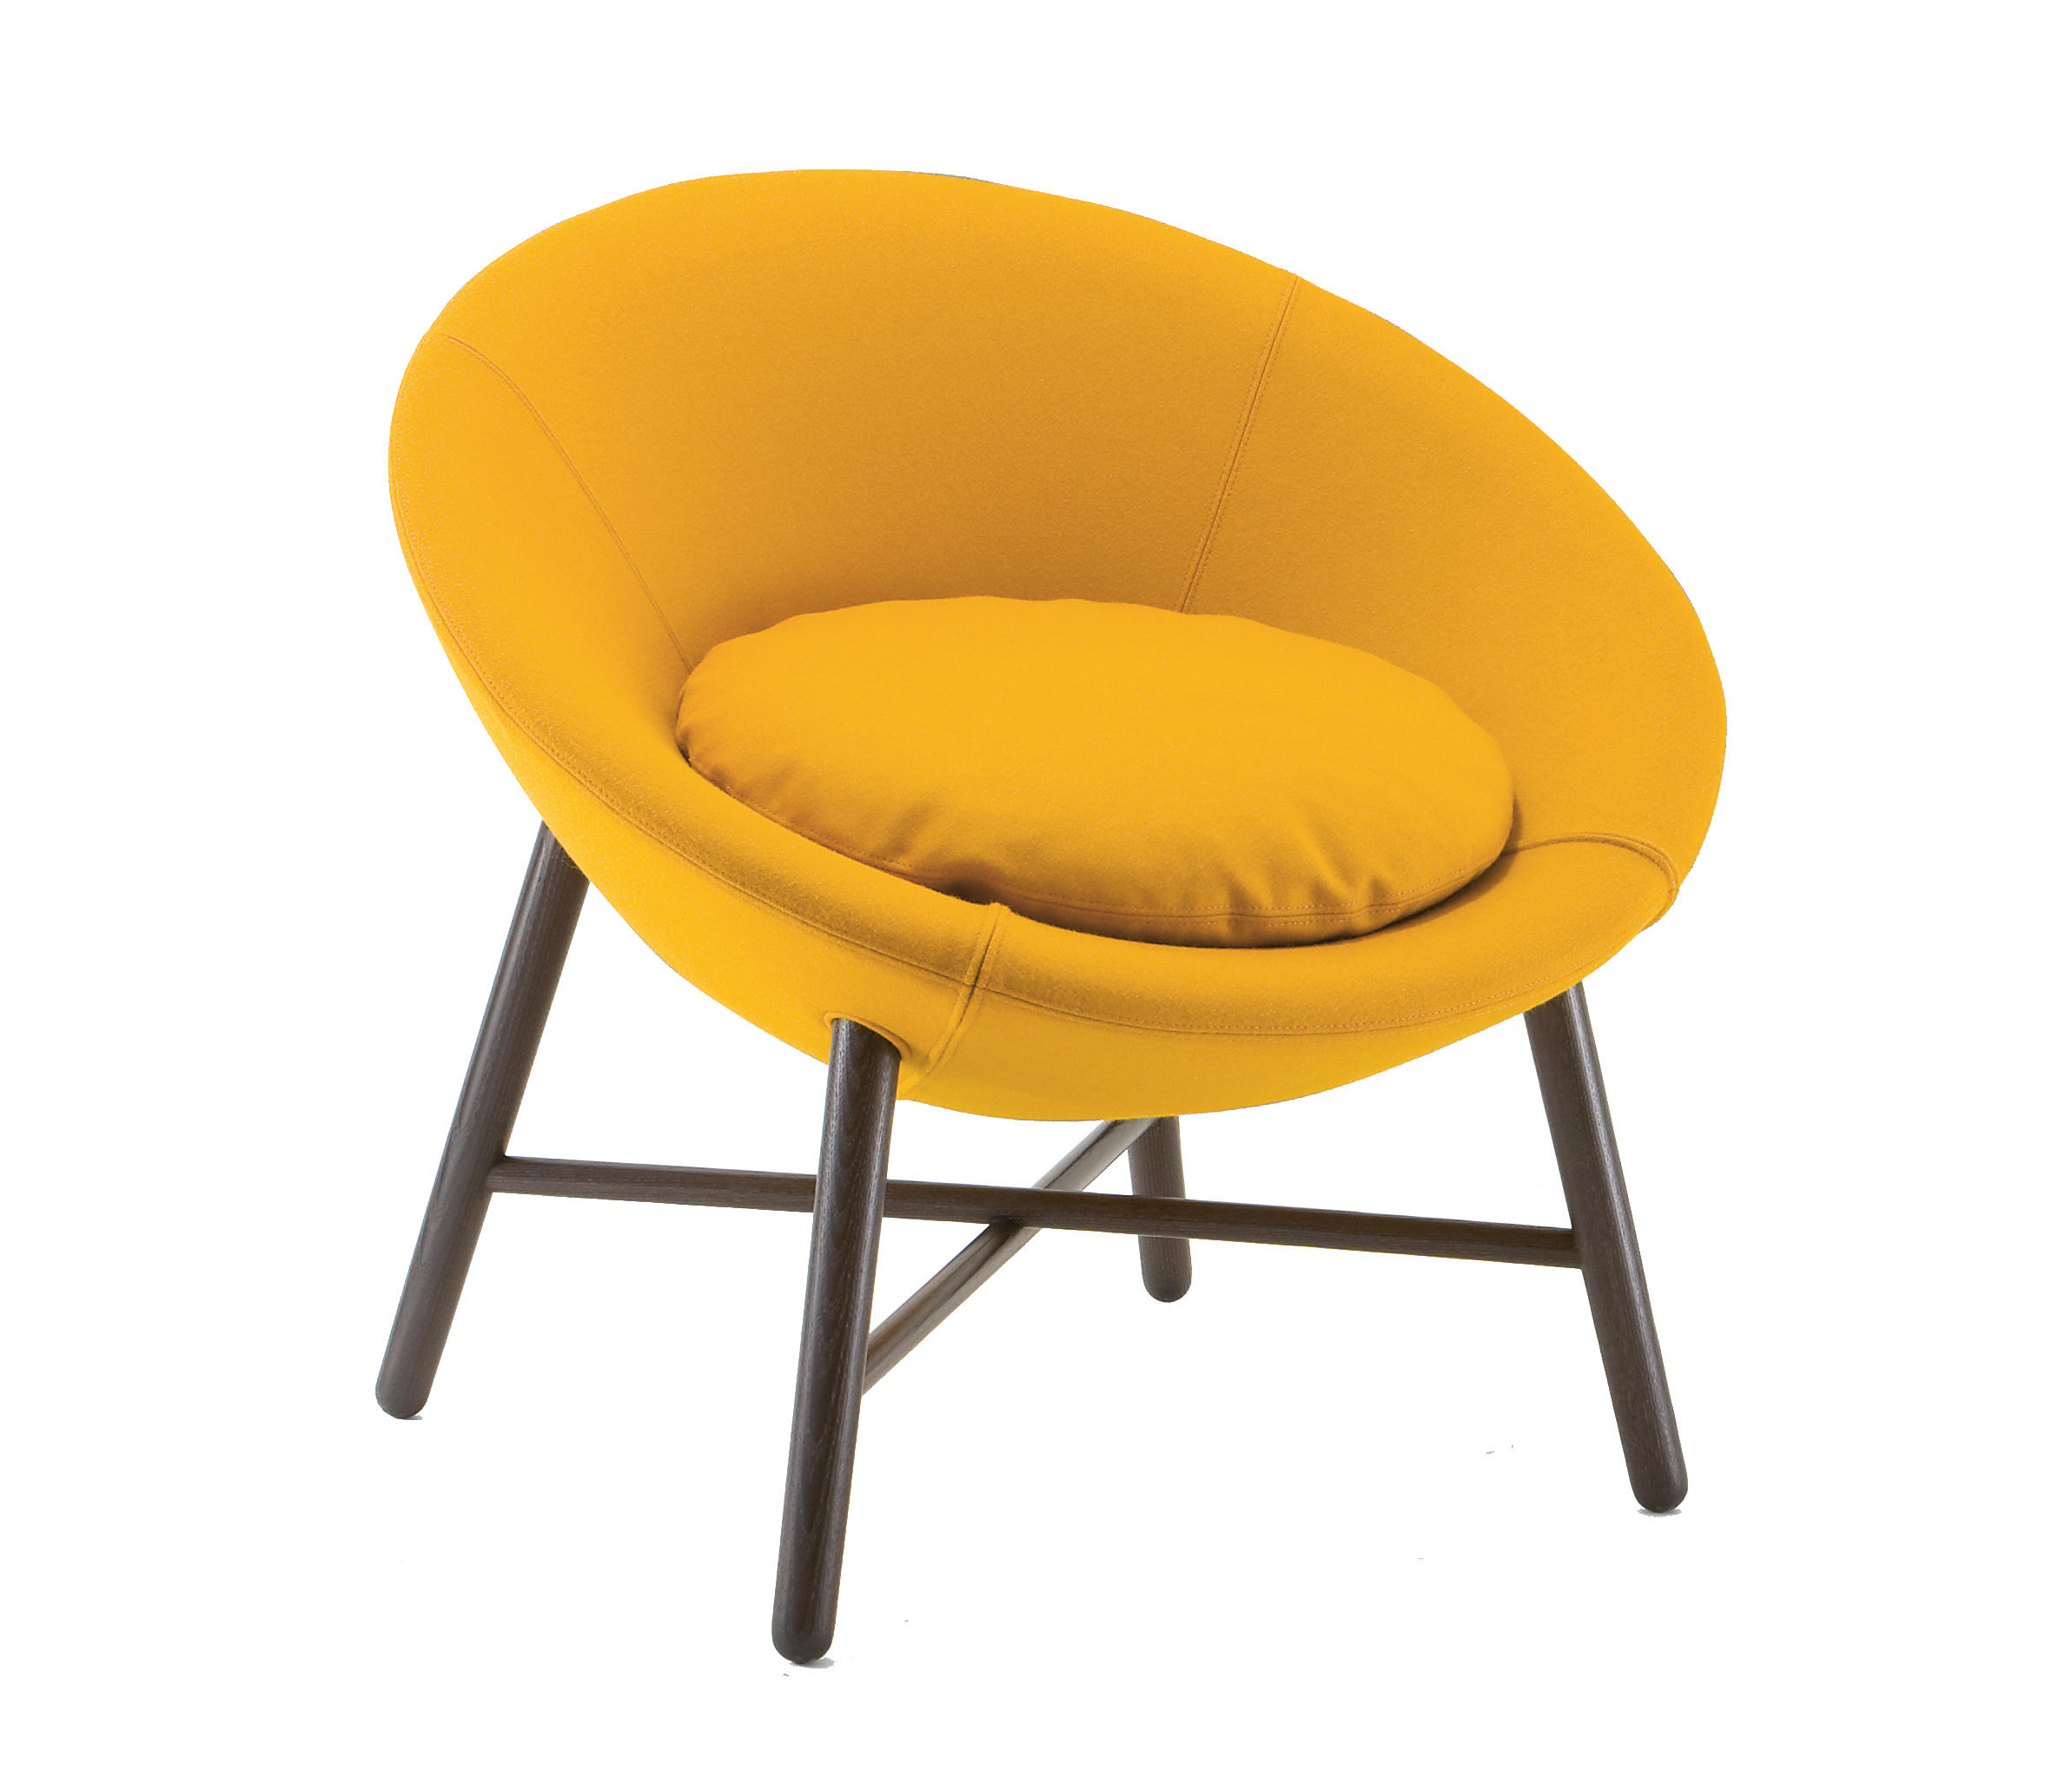 COCOON 1660 PO B95F Lounge chairs from Cizeta